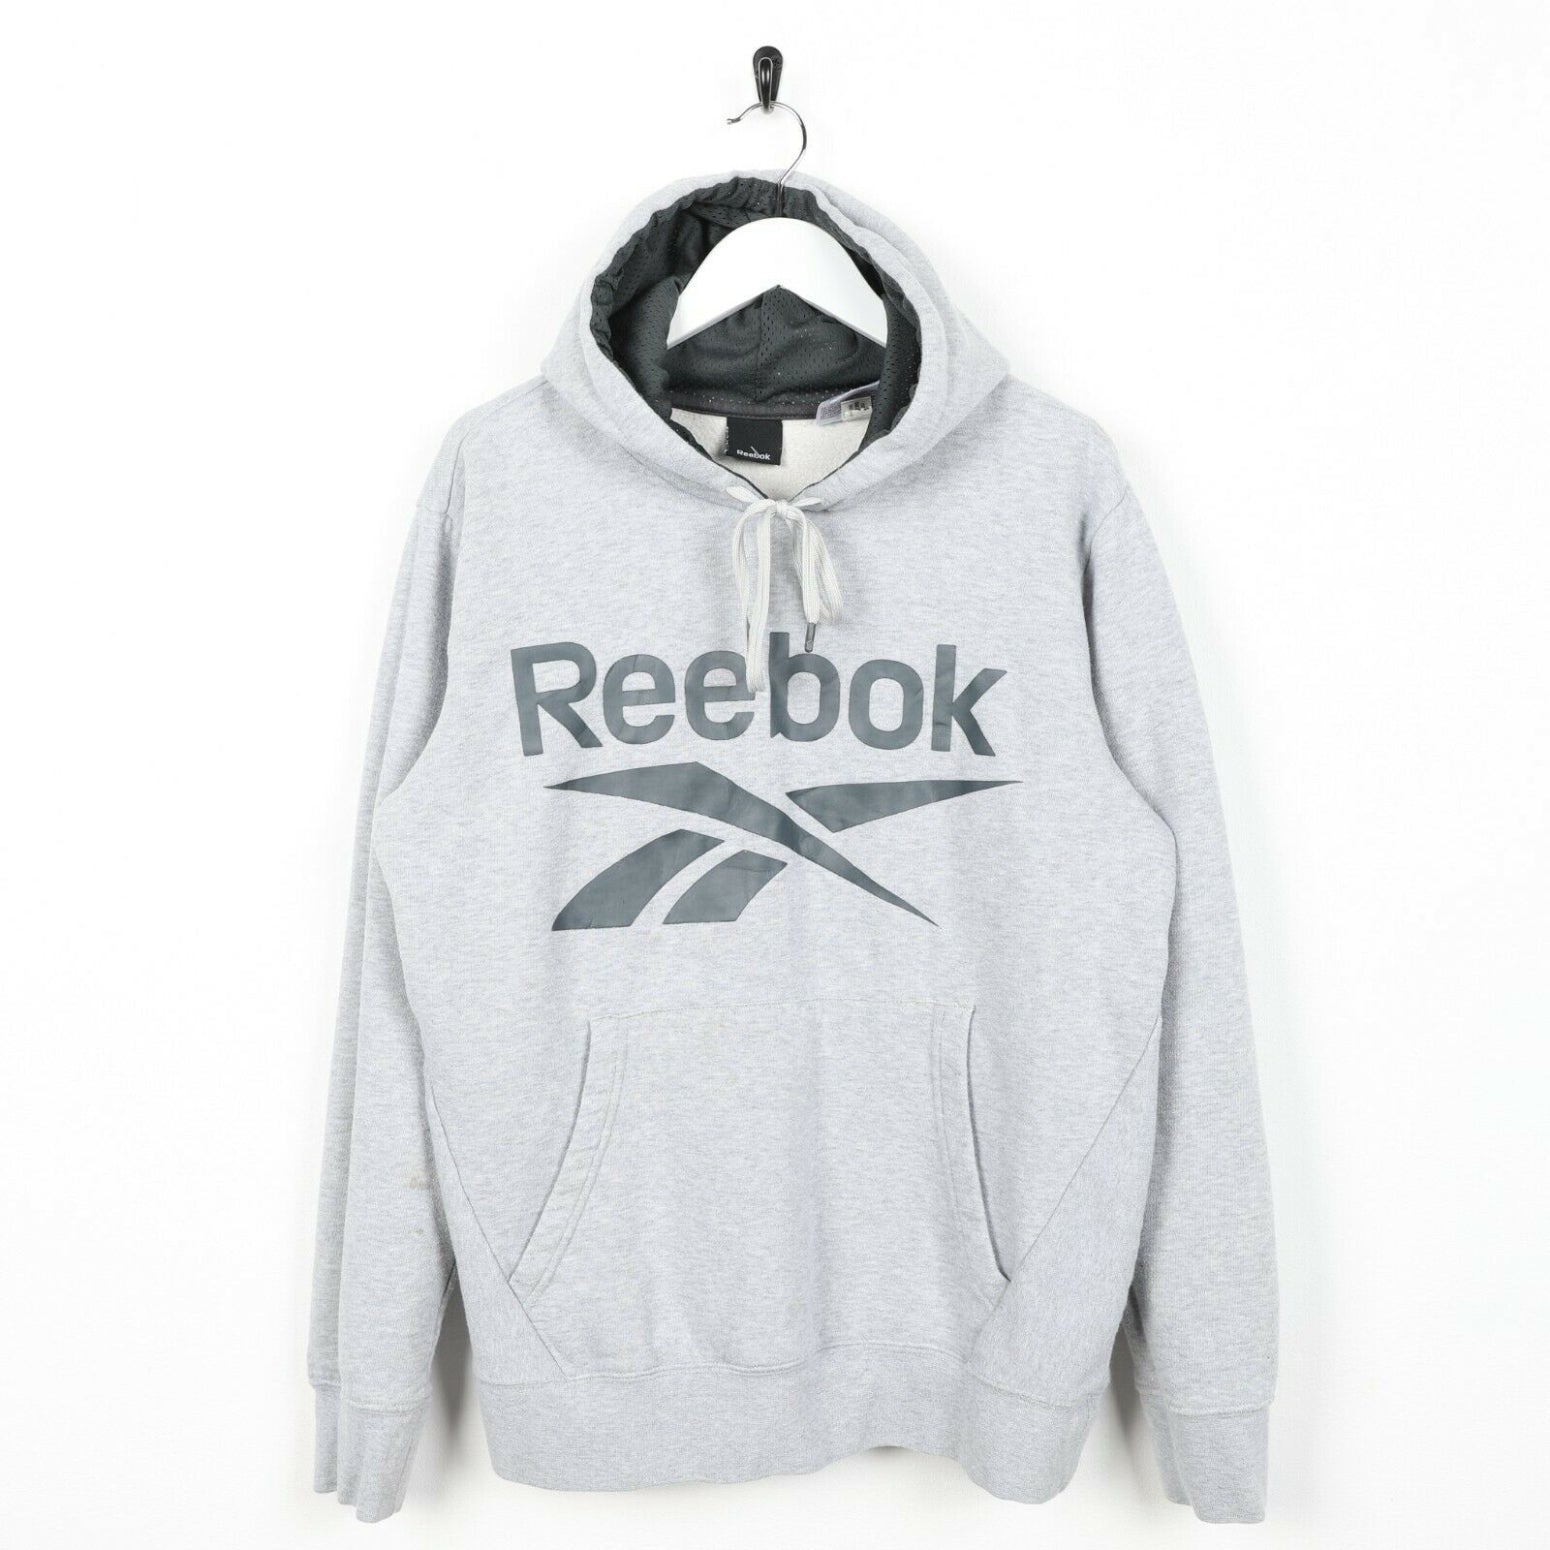 Vintage REEBOK Big Logo Hoodie Sweatshirt Grey Small S